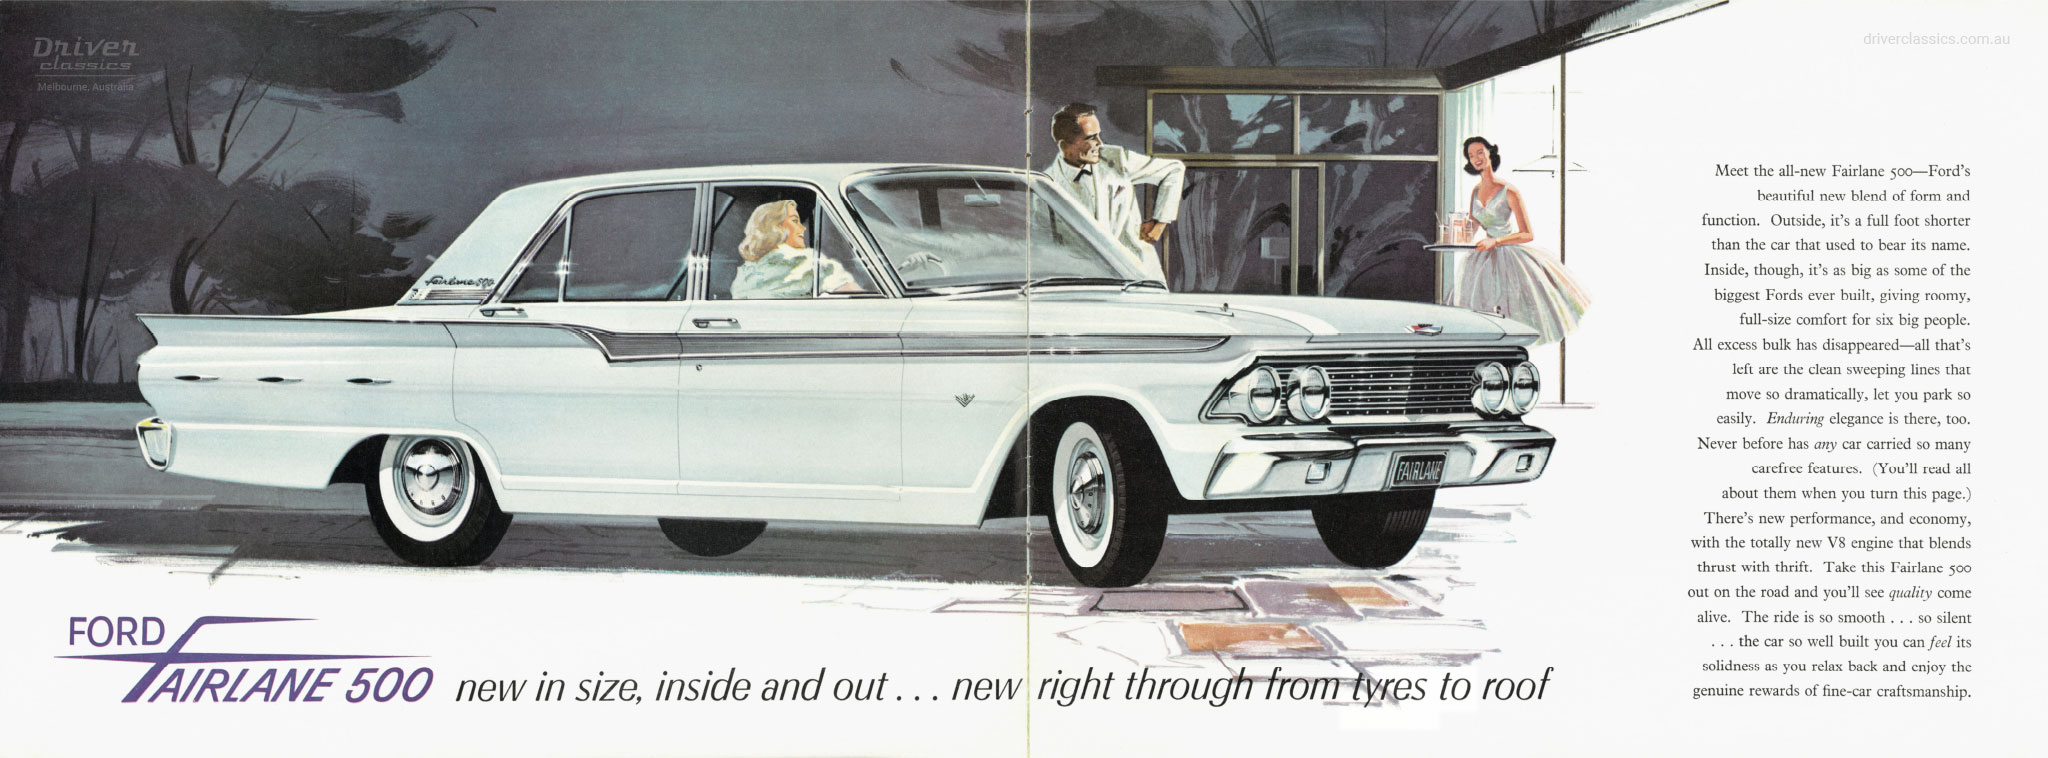 Ford Fairlane 500, 1962 model, brochure page